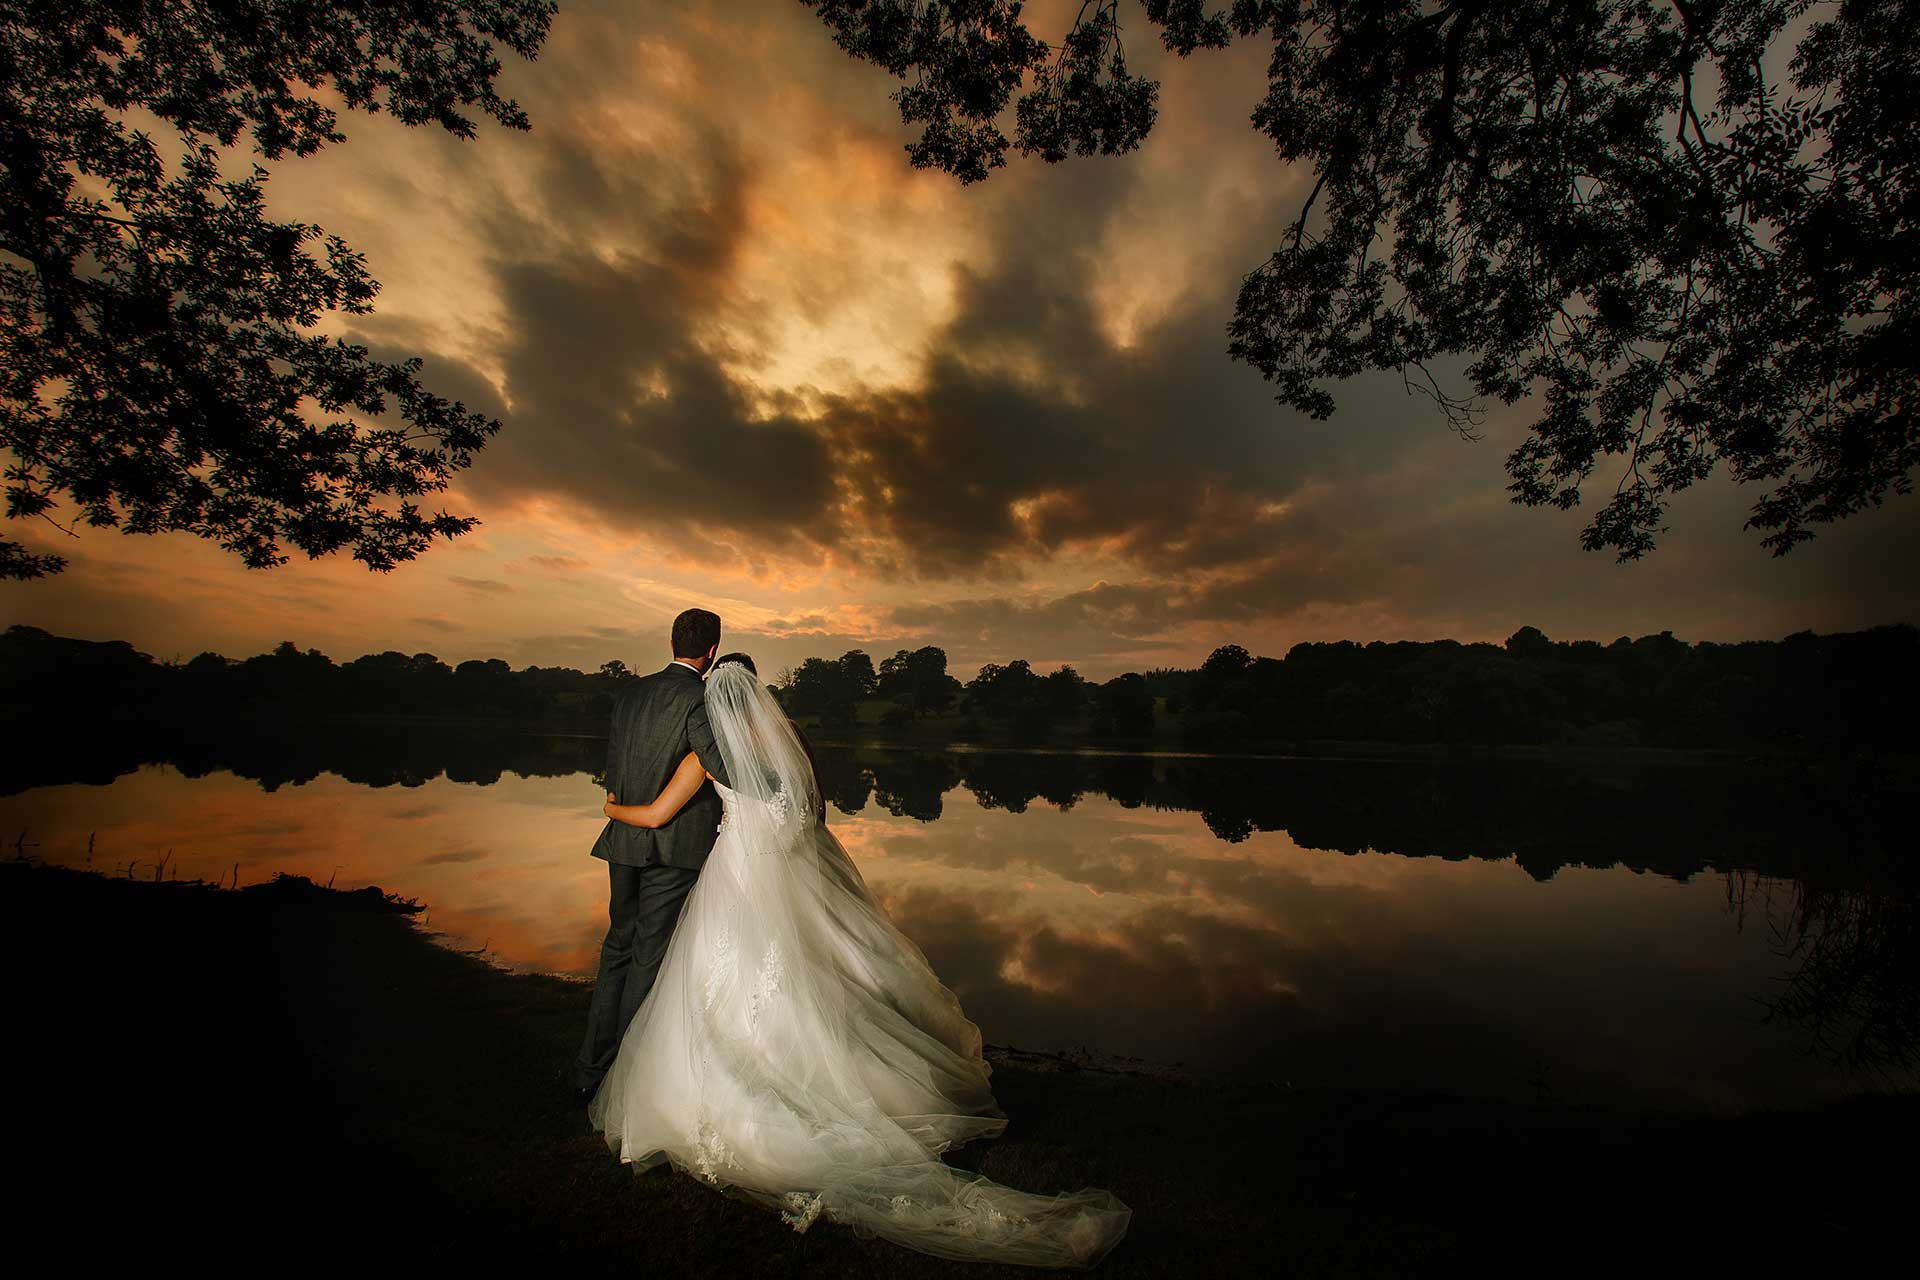 A stunning sunset with a bride and groom at Combermere Abbey by Qualified Shropshire Wedding Photographer pbartworks